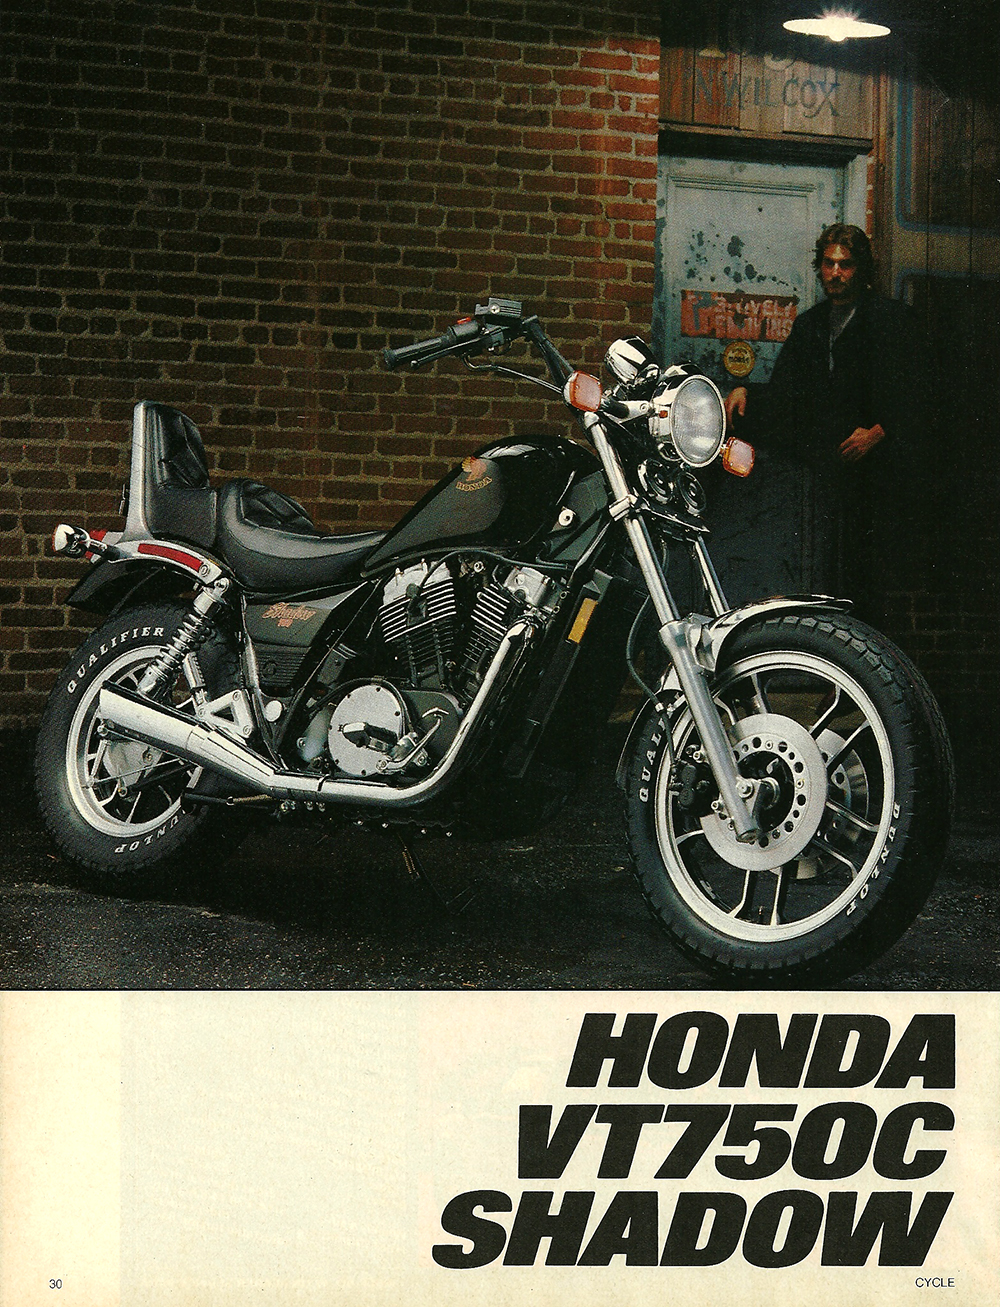 1983 Honda VT750C Shadow road test 1.jpg